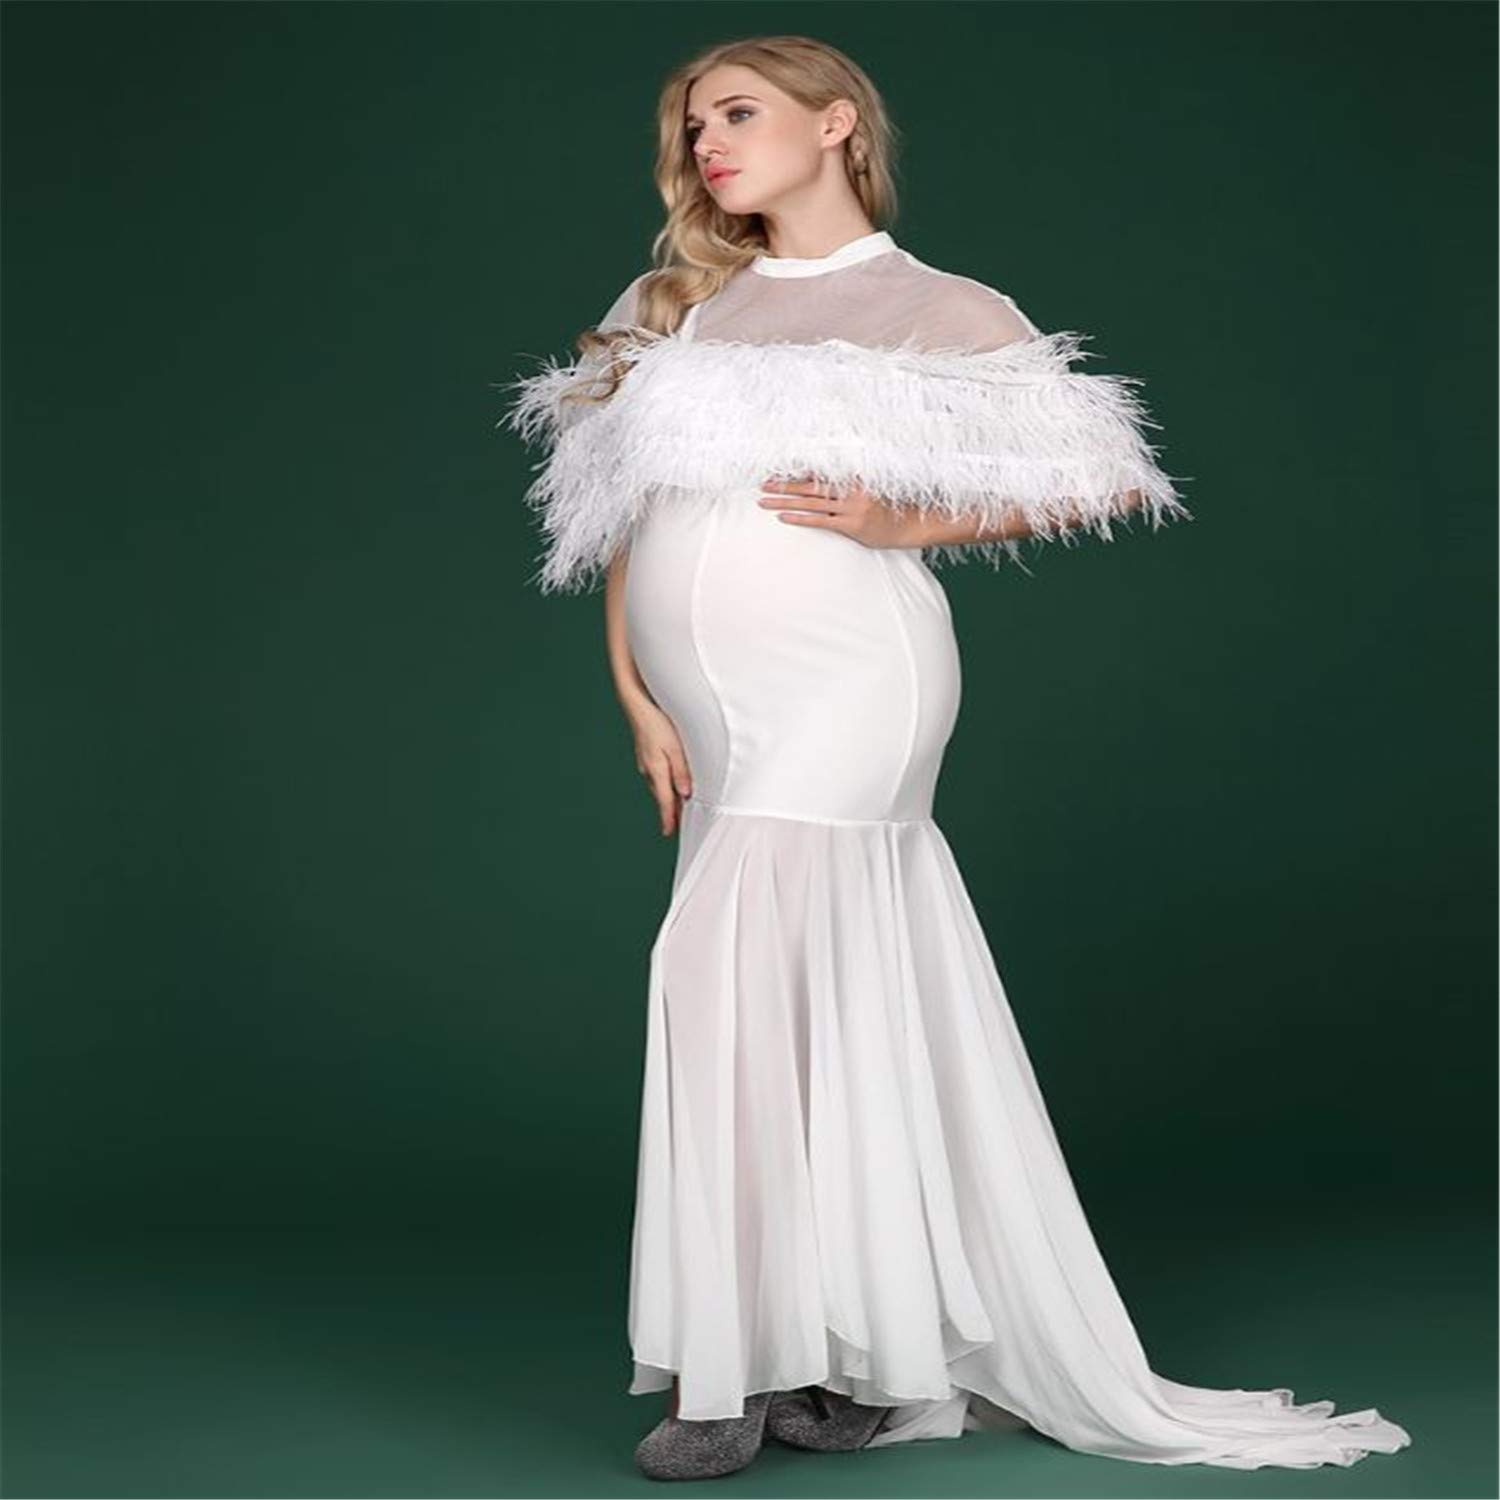 Maternity Dress,European American Studio Maternity Clothes Photo Clothing Pregnant Women Photo Photographic Clothing